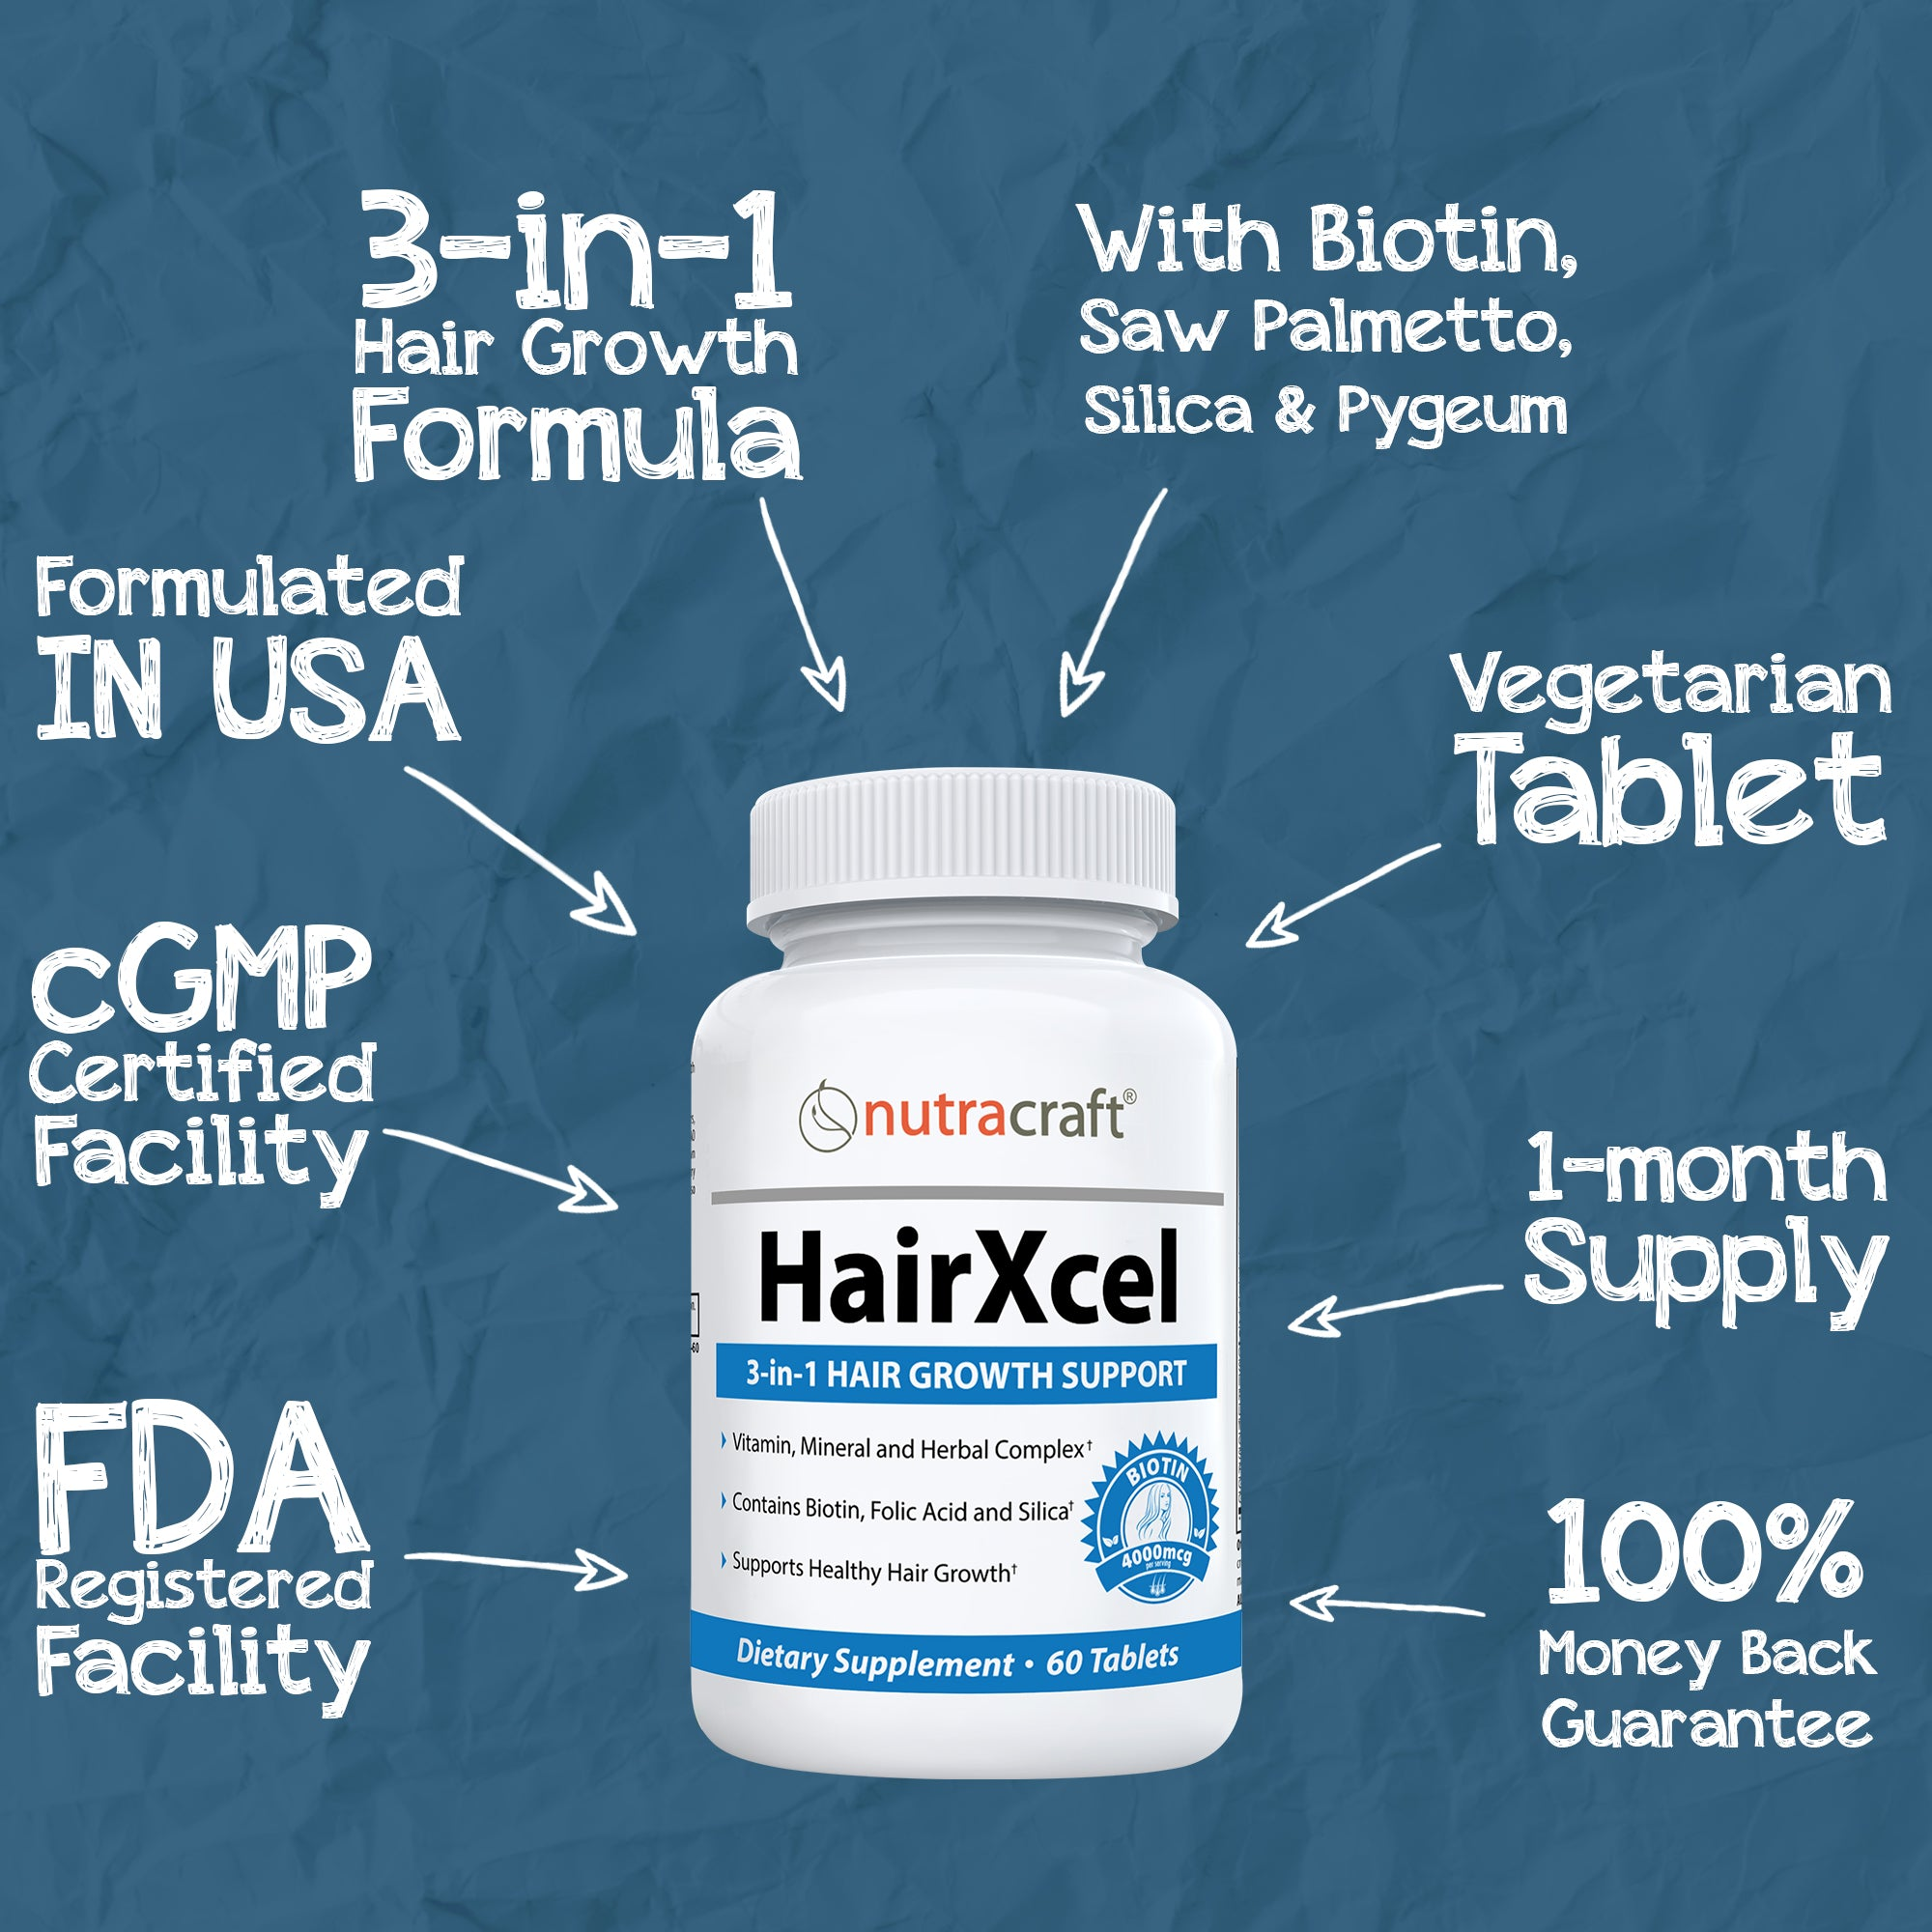 nutracraft-hairxcel-seals